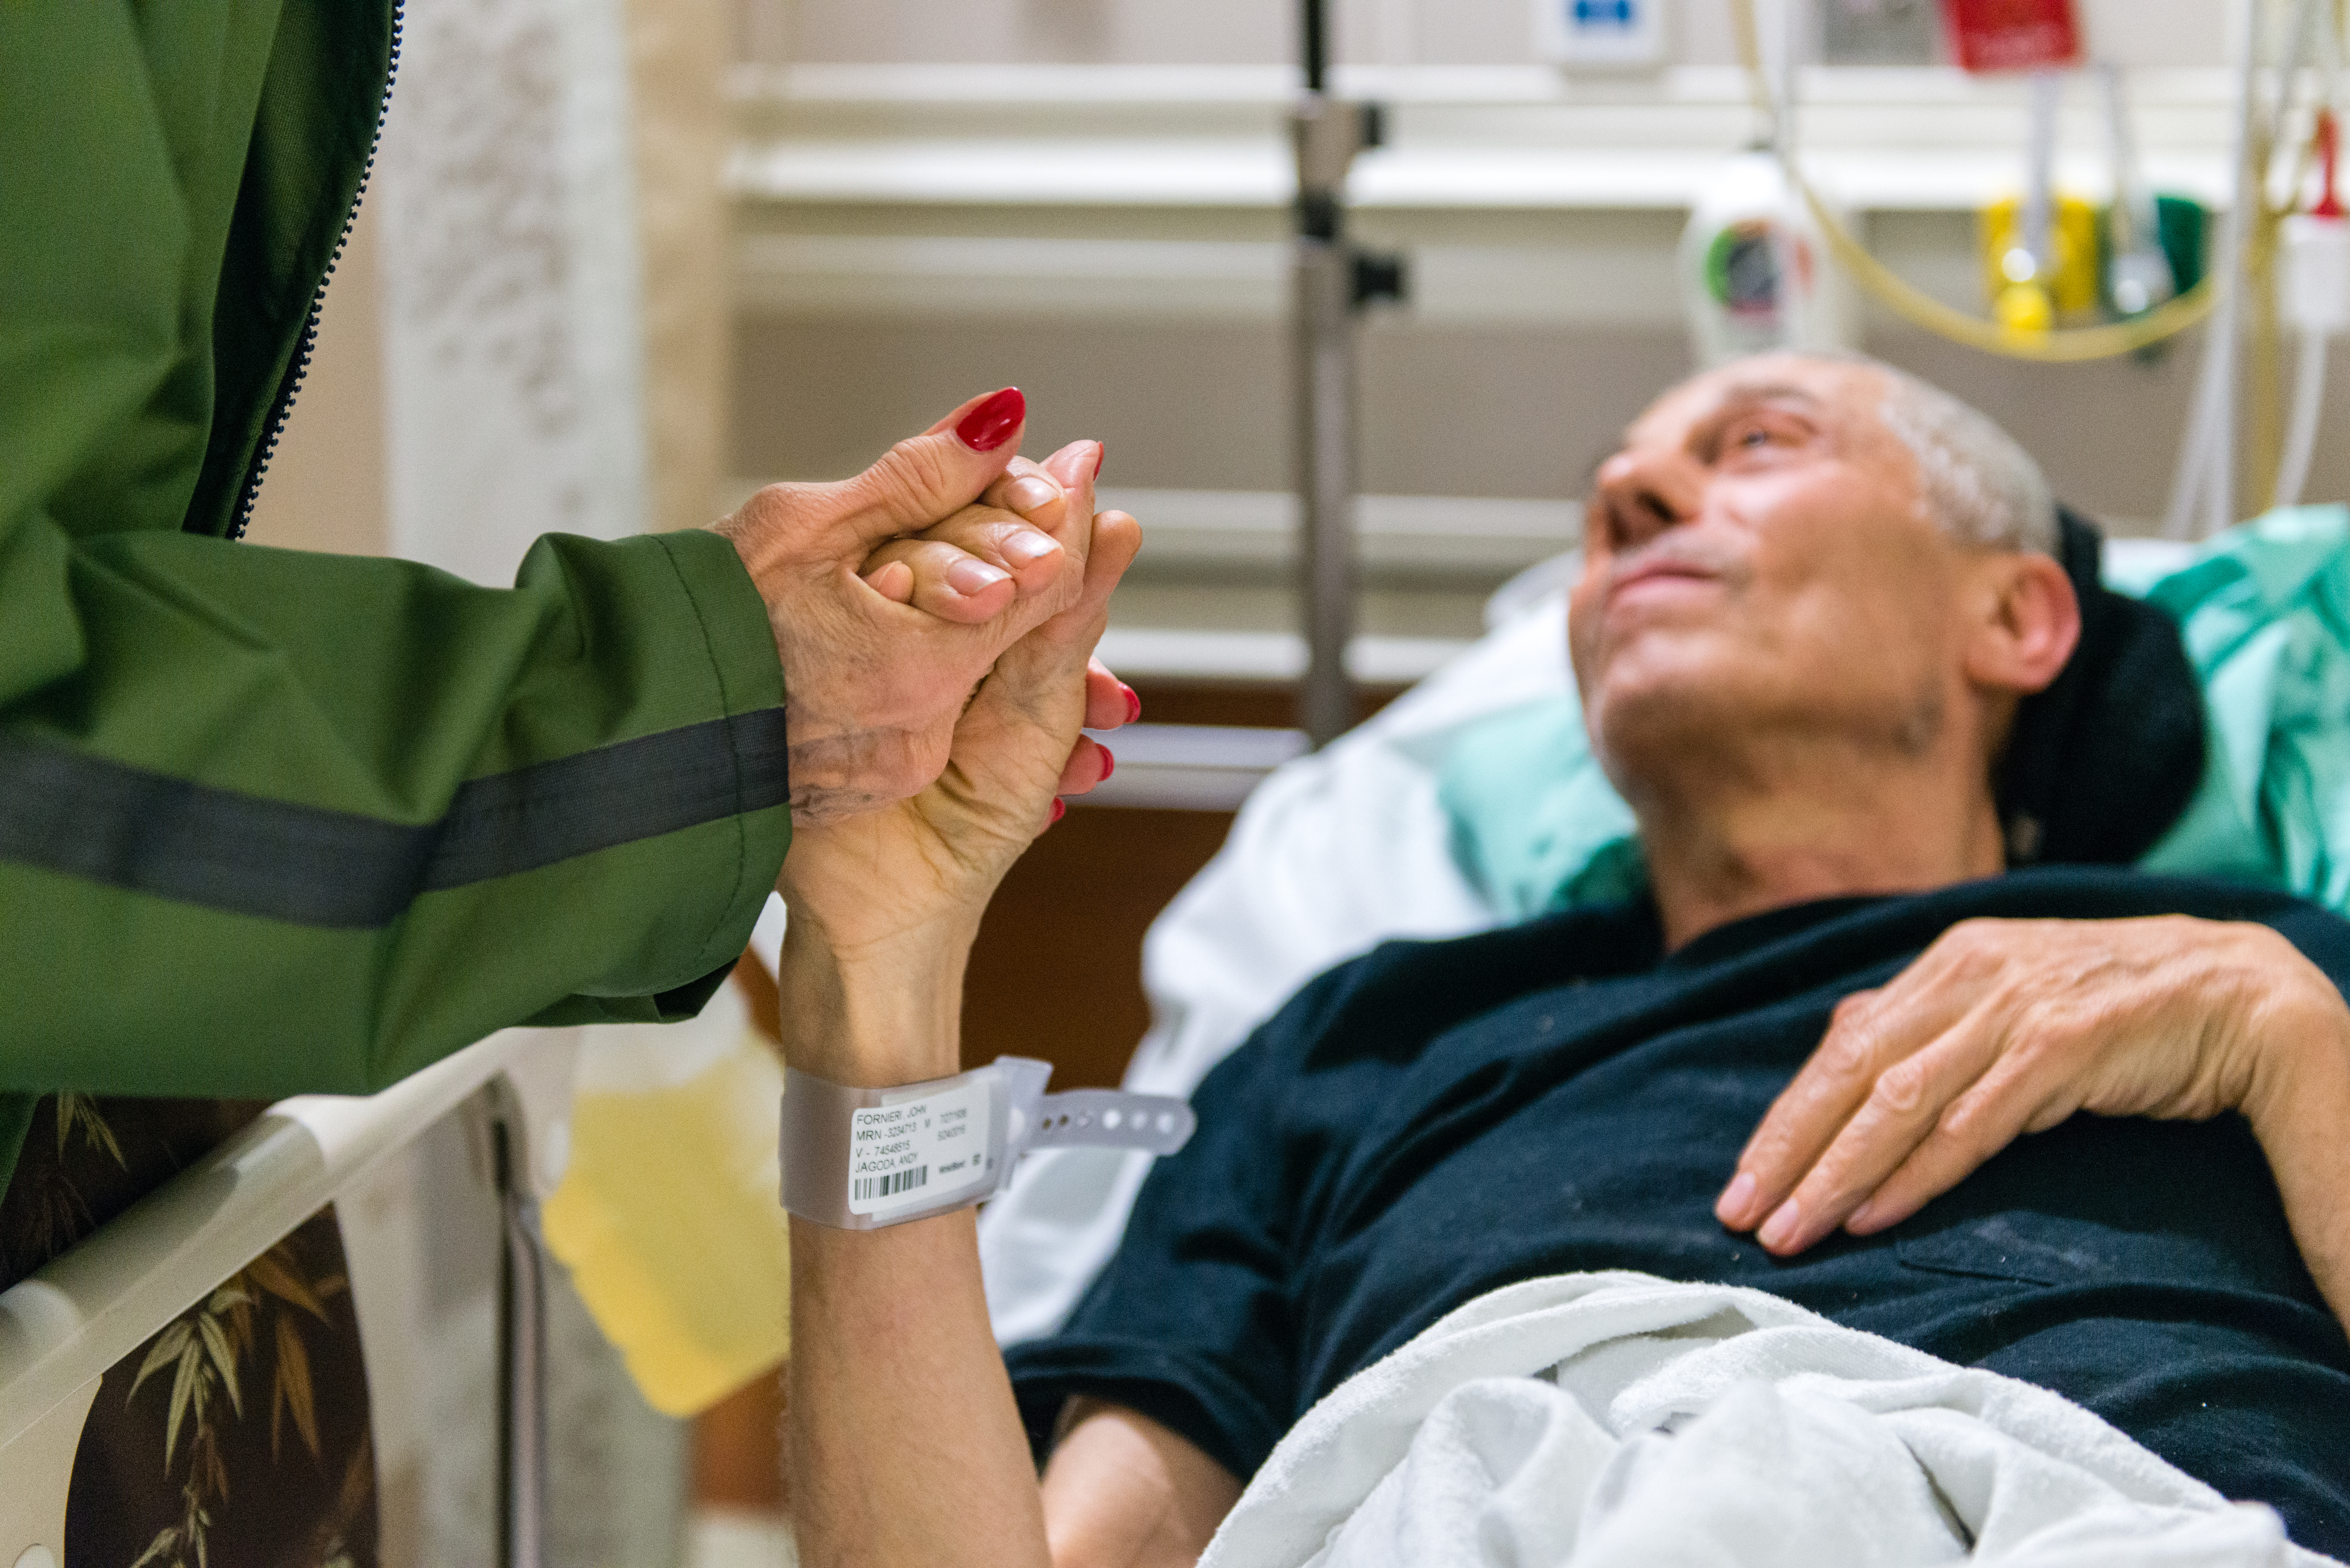 A friend visits Fornieri in the geriatric emergency room infection at Mount Sinai Hospital. (Heidi de Marco/KHN)